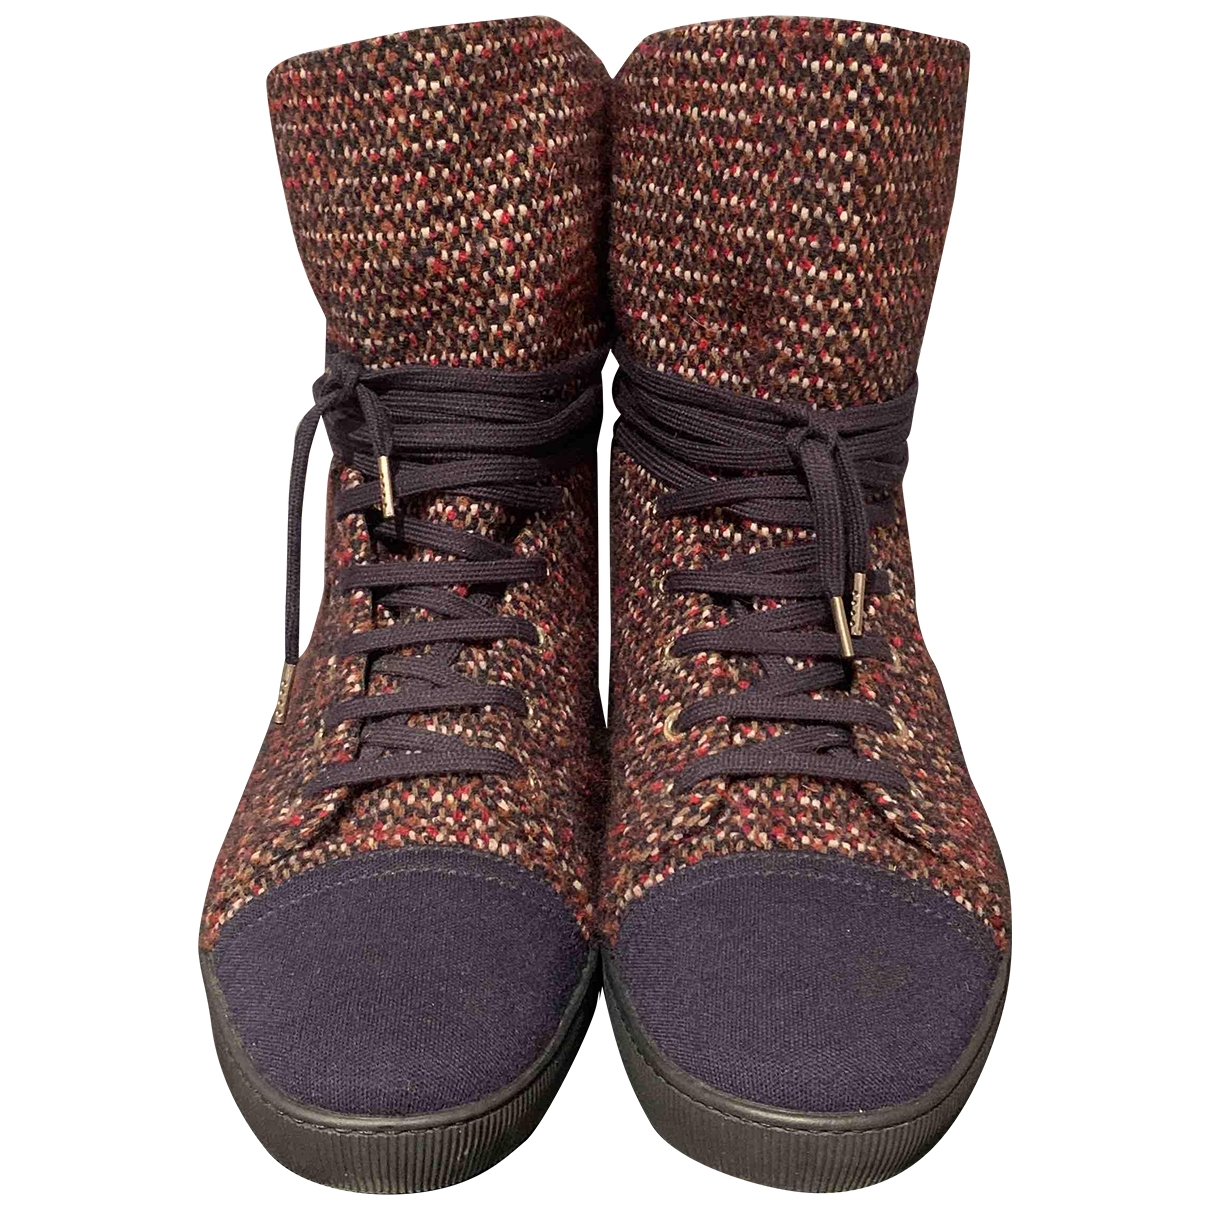 Botas con cordones Tweed Chanel